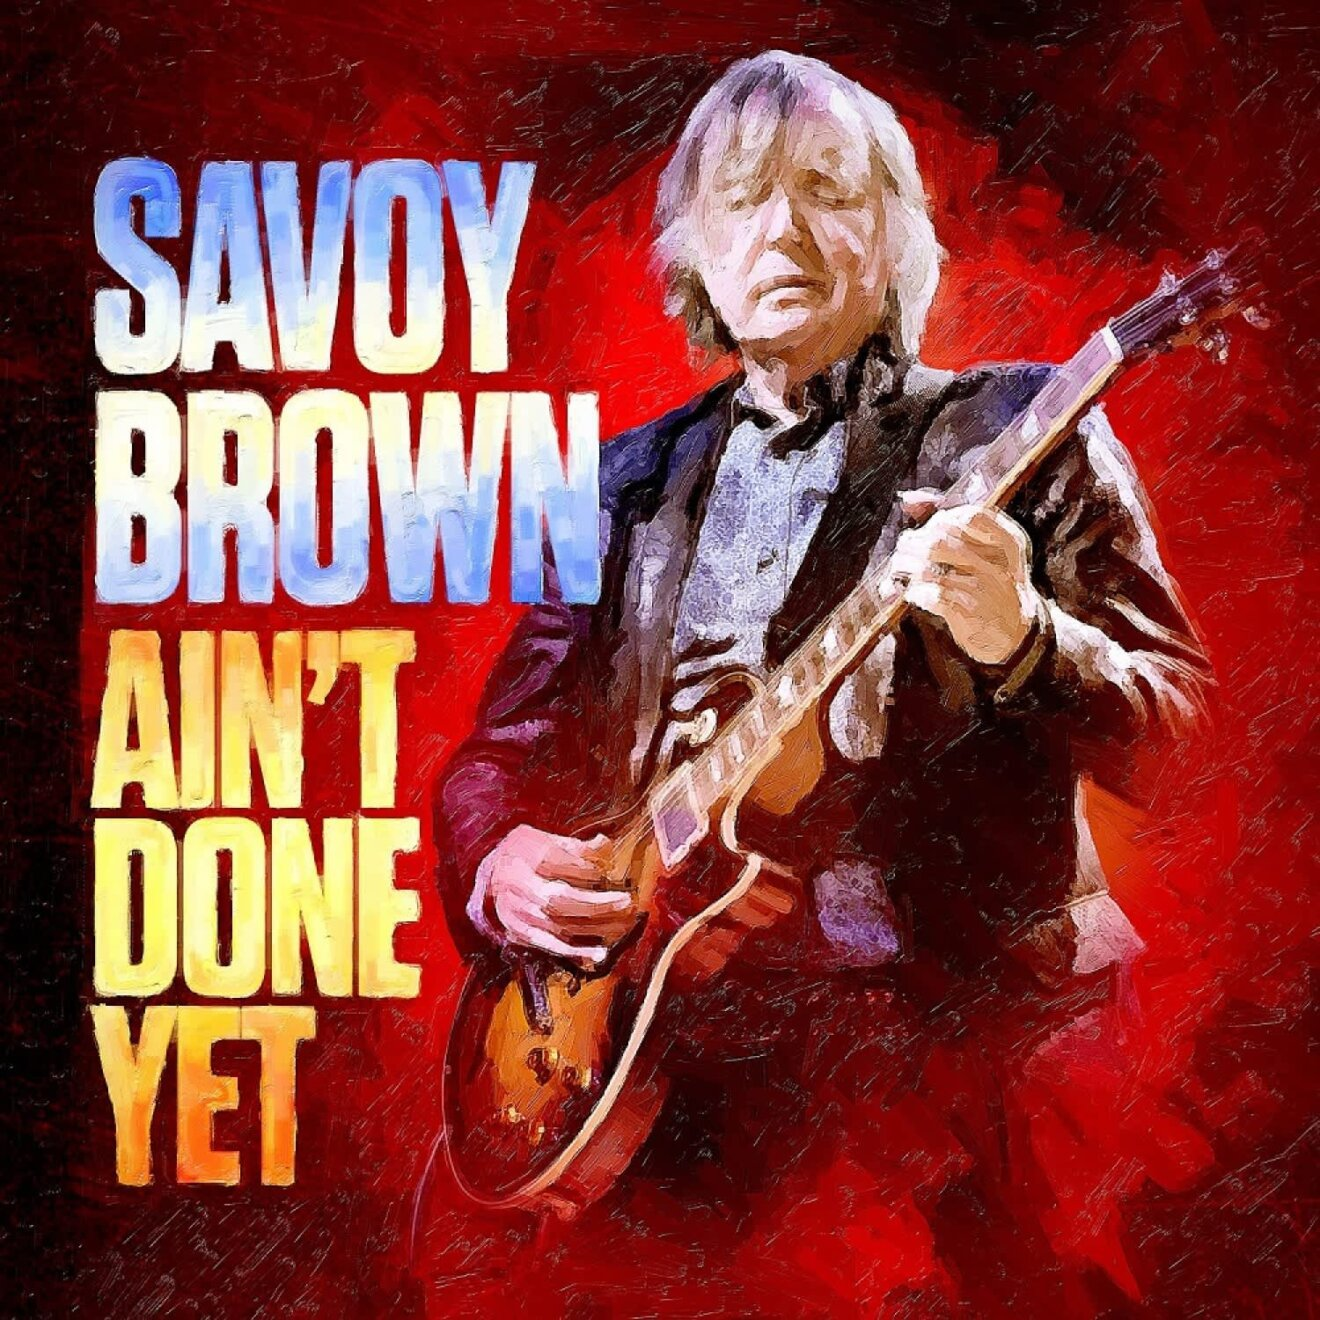 Savoy Brown - Ain t Done Yet